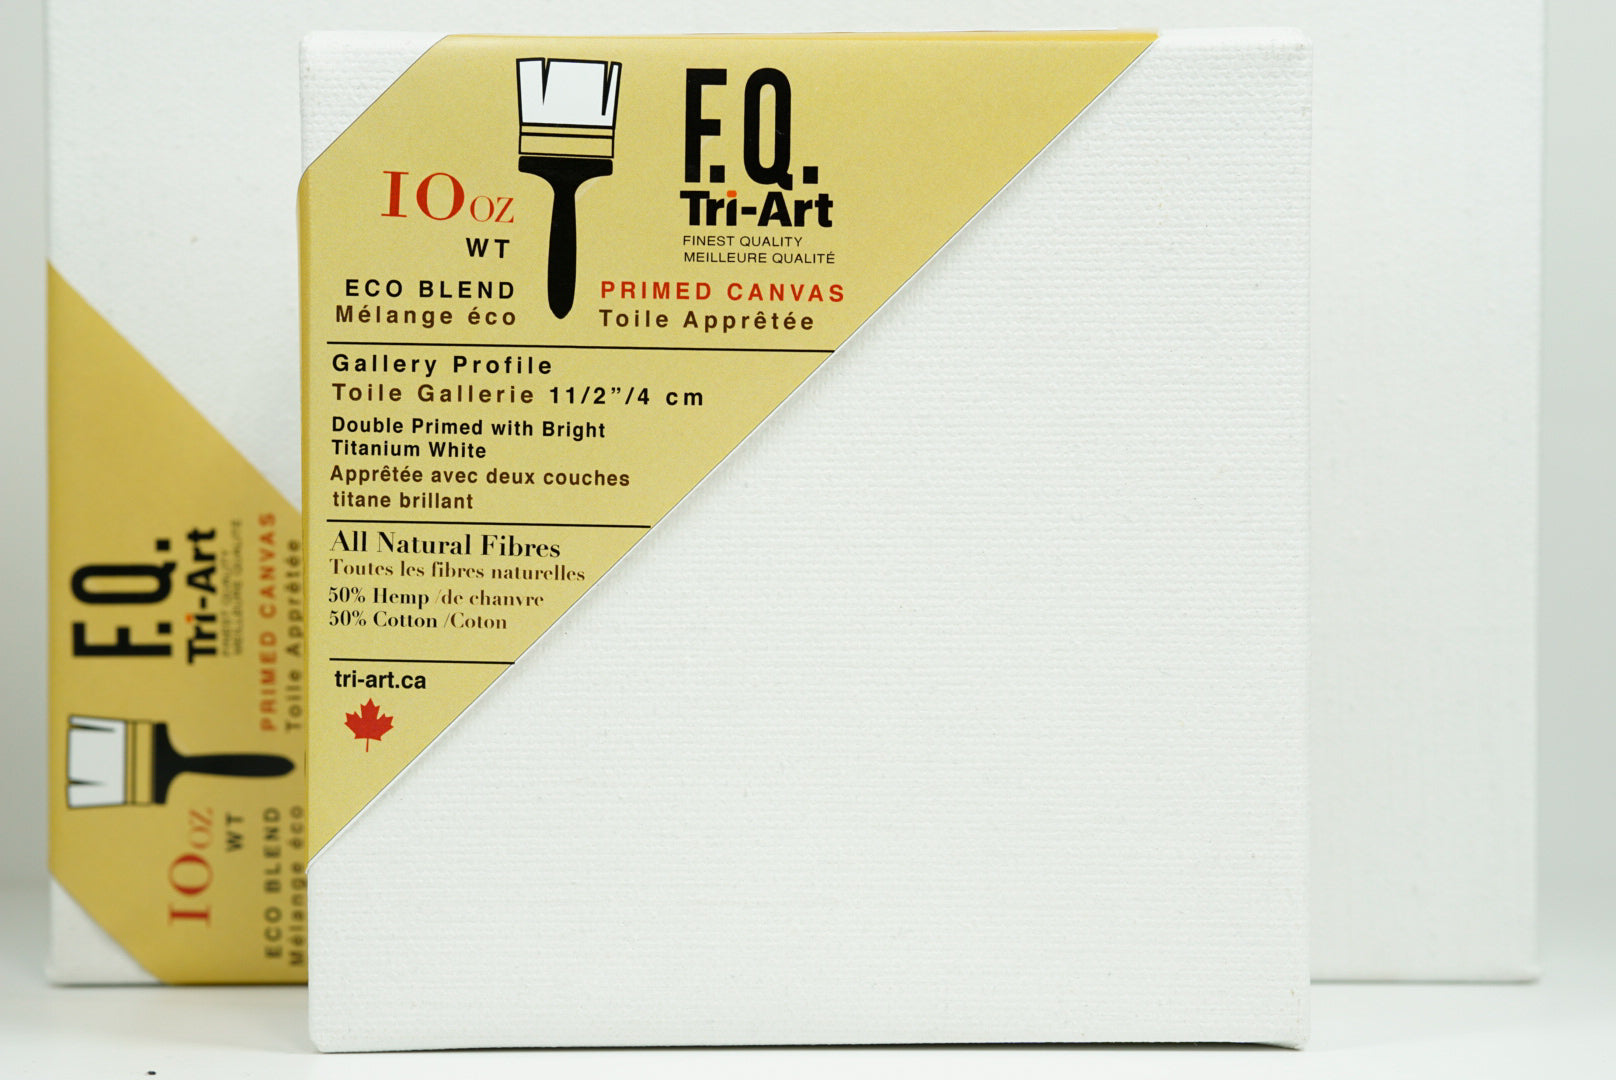 "Tri-Art FQ Stretched Canvas - Artist Gallery 1 1/2"" Profile Primed - 30x30"" (4438790045783)"